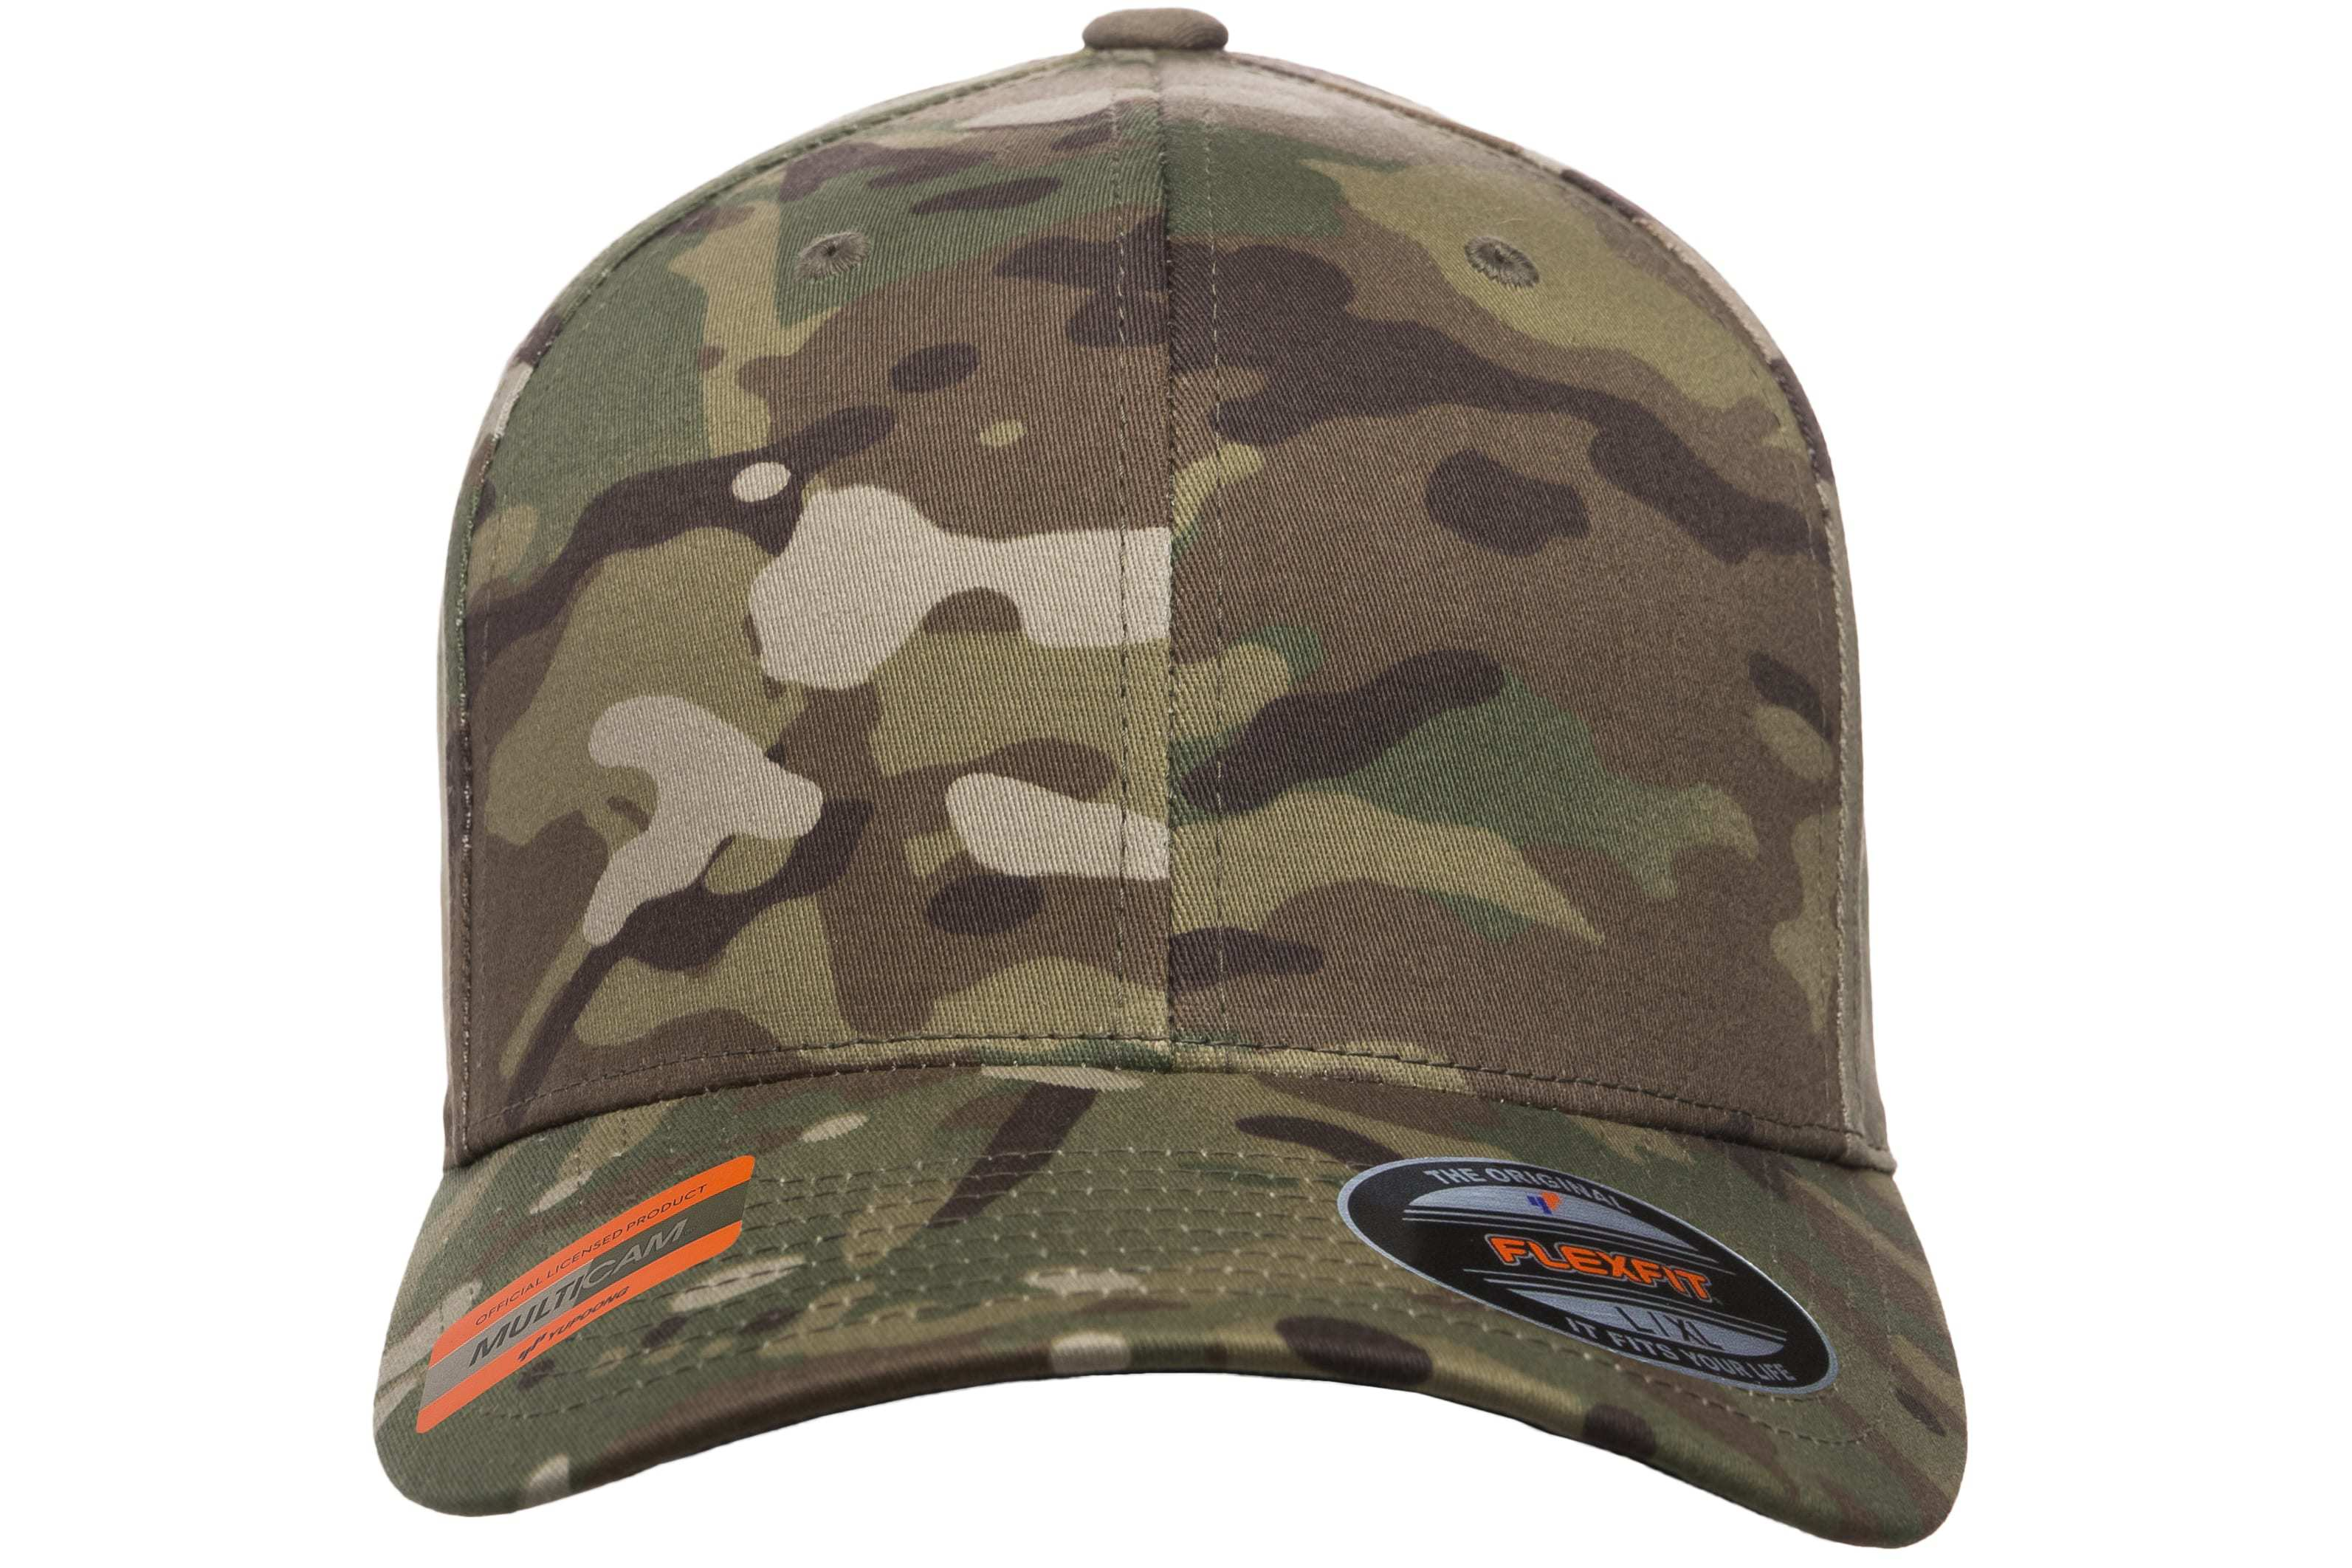 fecd9cbd0ae Fitted Cap and Other Great Head Gear from The Hat Pros